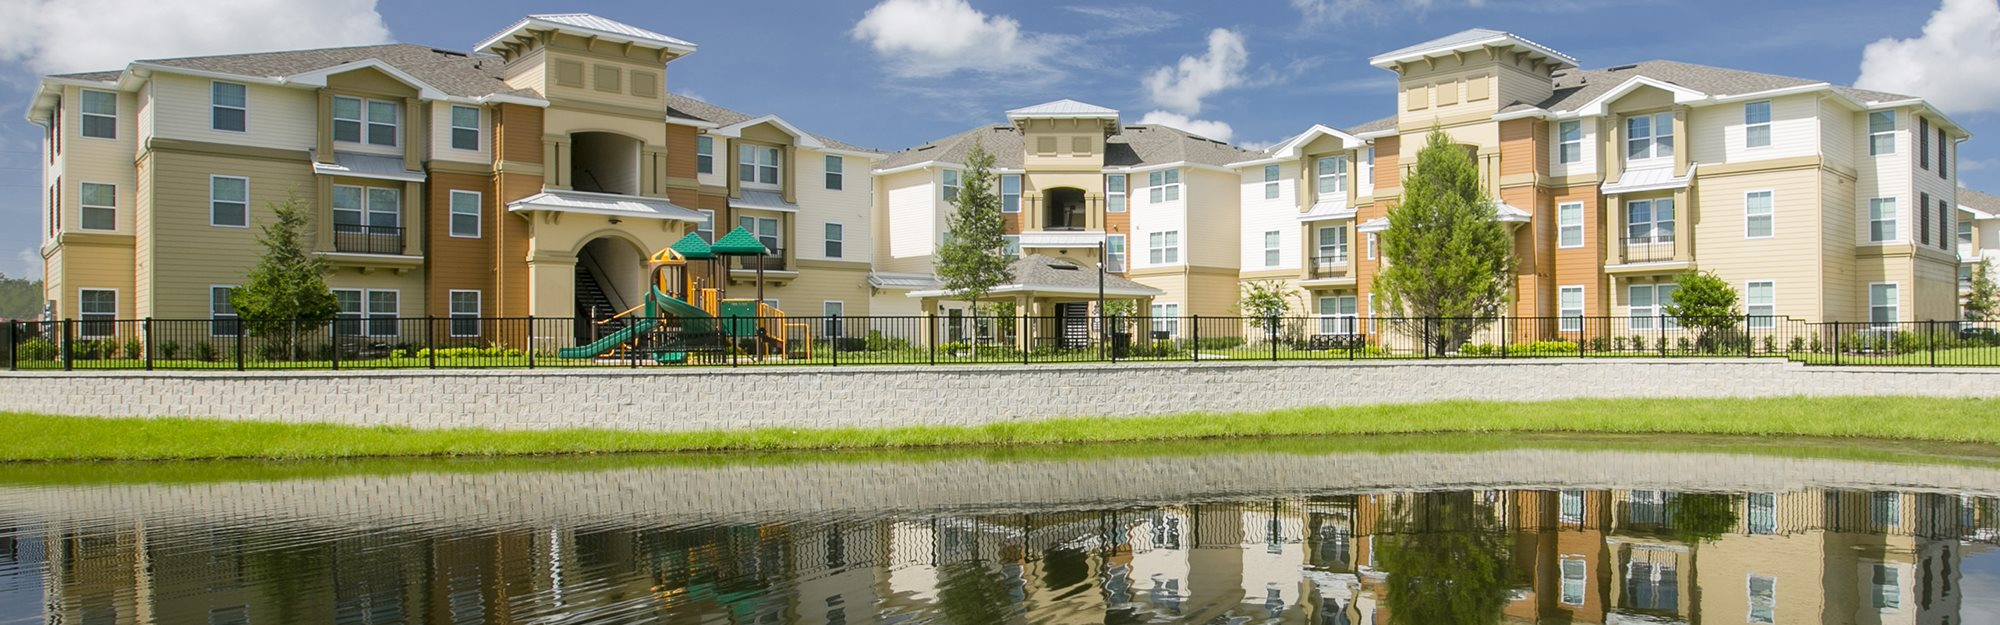 Osceola Pointe Apartments for rent in Kissimmee, FL. Make this community your new home or visit other Concord Rents communities at ConcordRents.com. Lake view